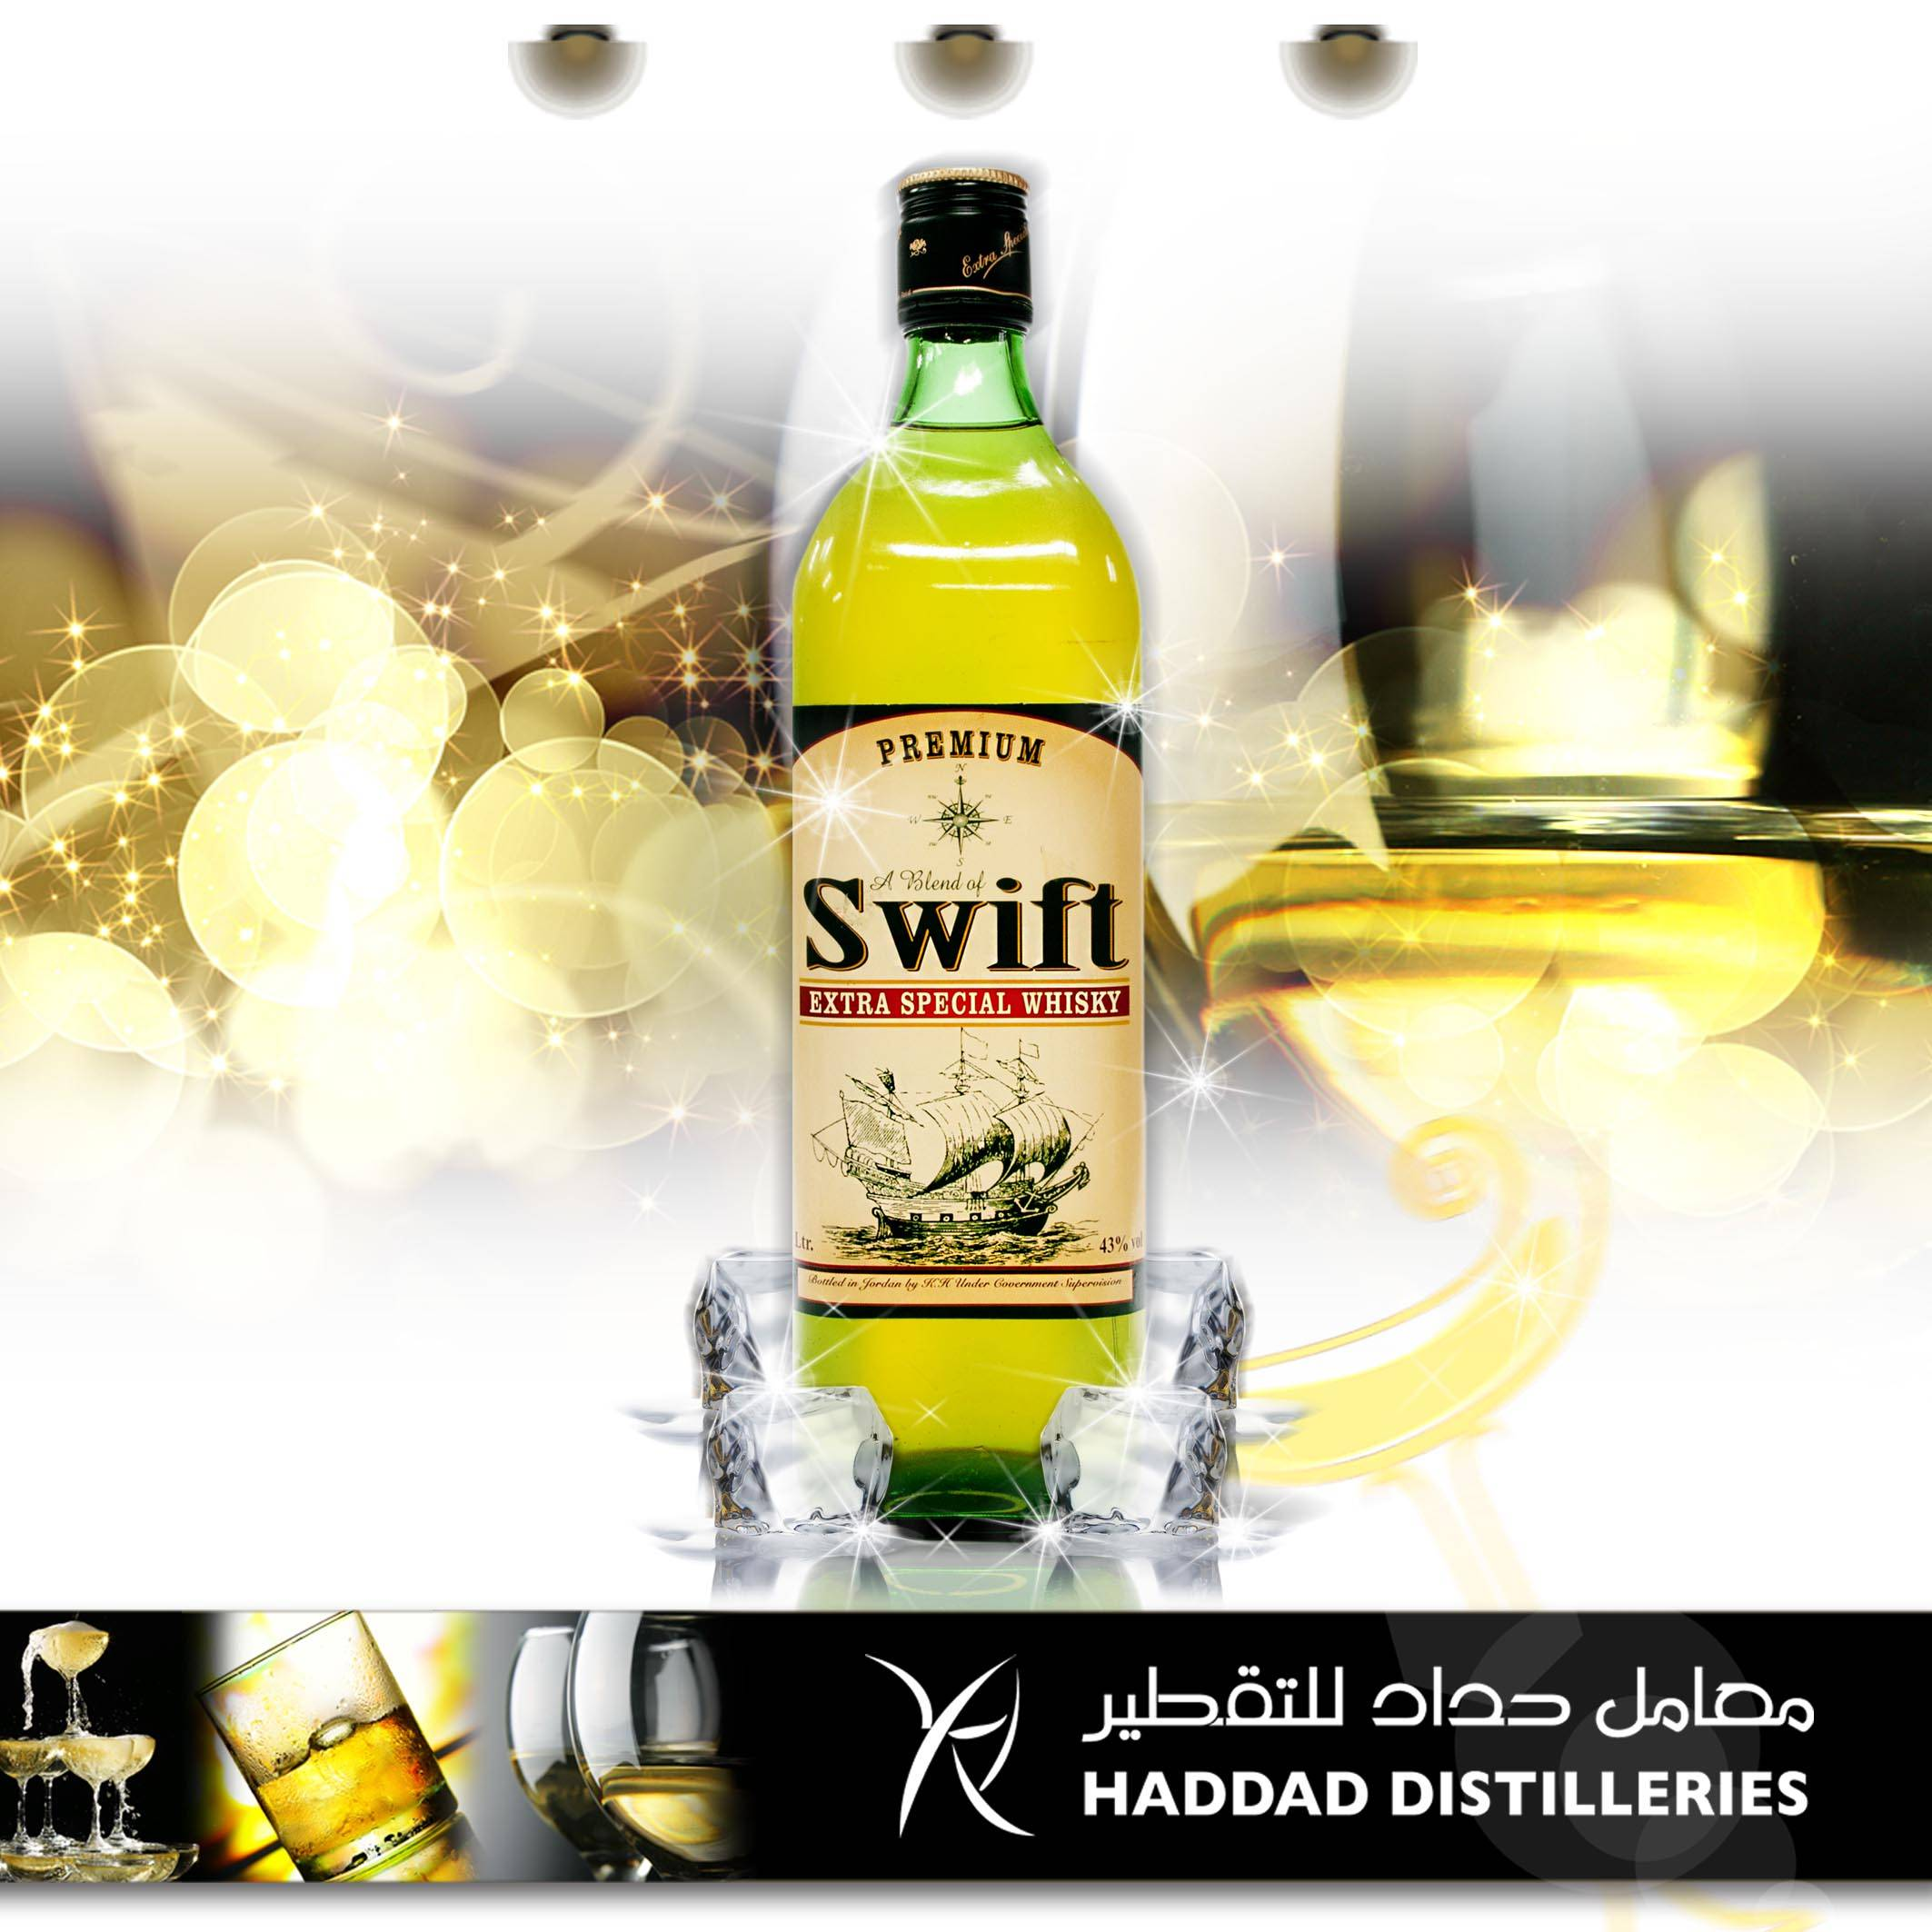 Swift Whisky